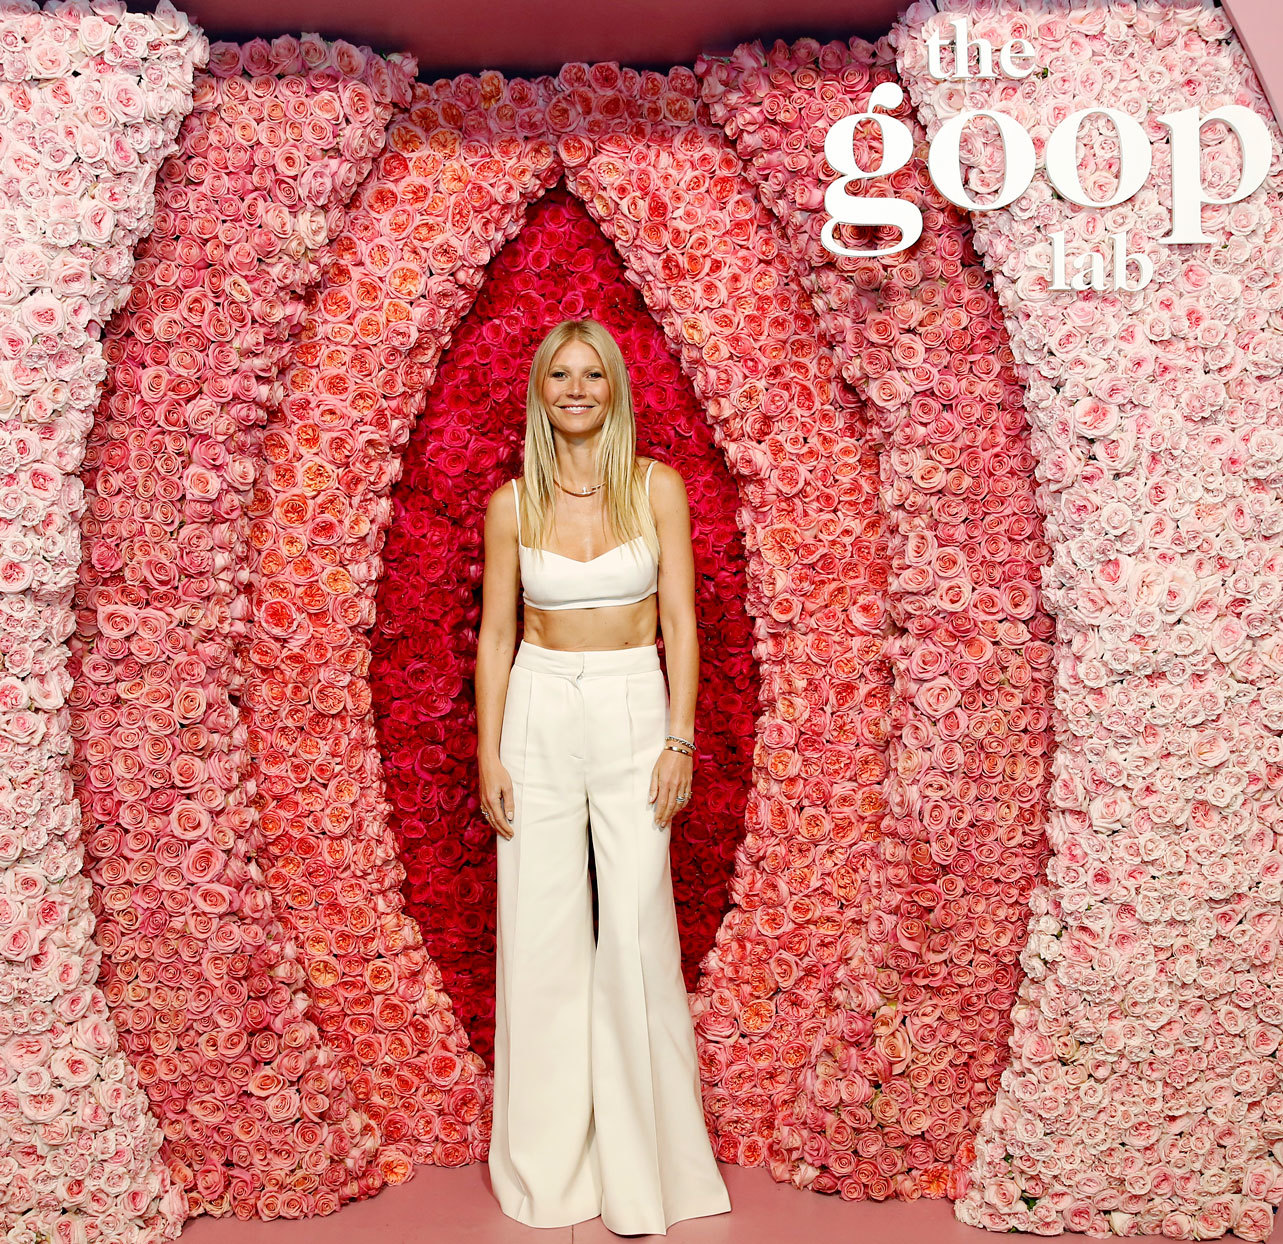 Gwyneth Paltrow's New Goop Netflix Series Is Actually the Craziest Thing You'll See on TV